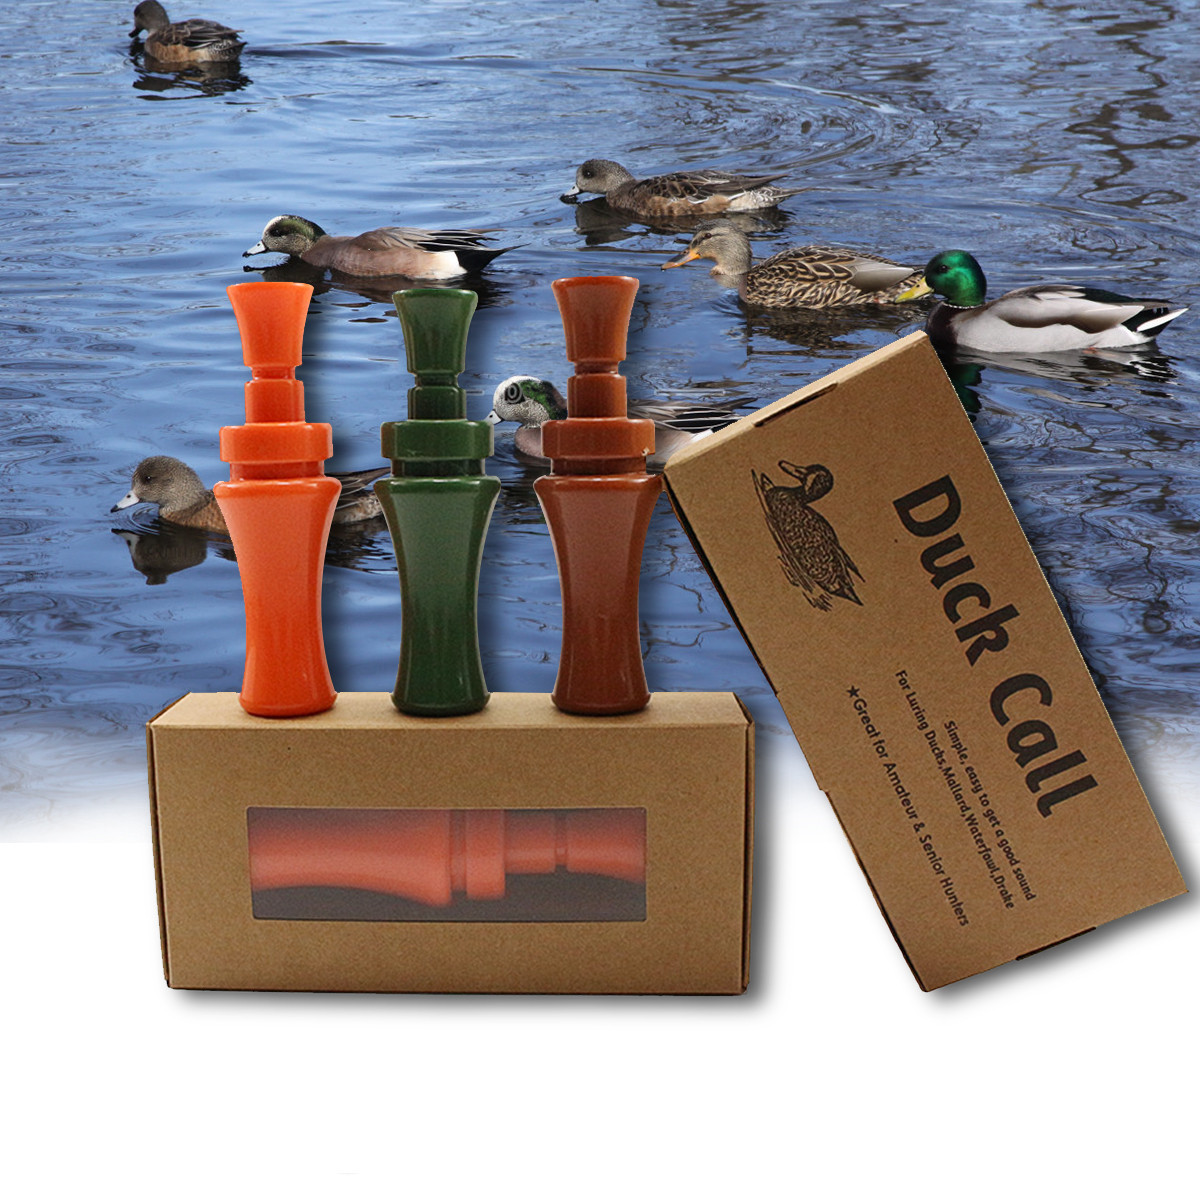 OUTDOOR DUCK CALL WHISTLE PHEASANT MALLARD HUNTING GAME CALLER DECOY ALLURING